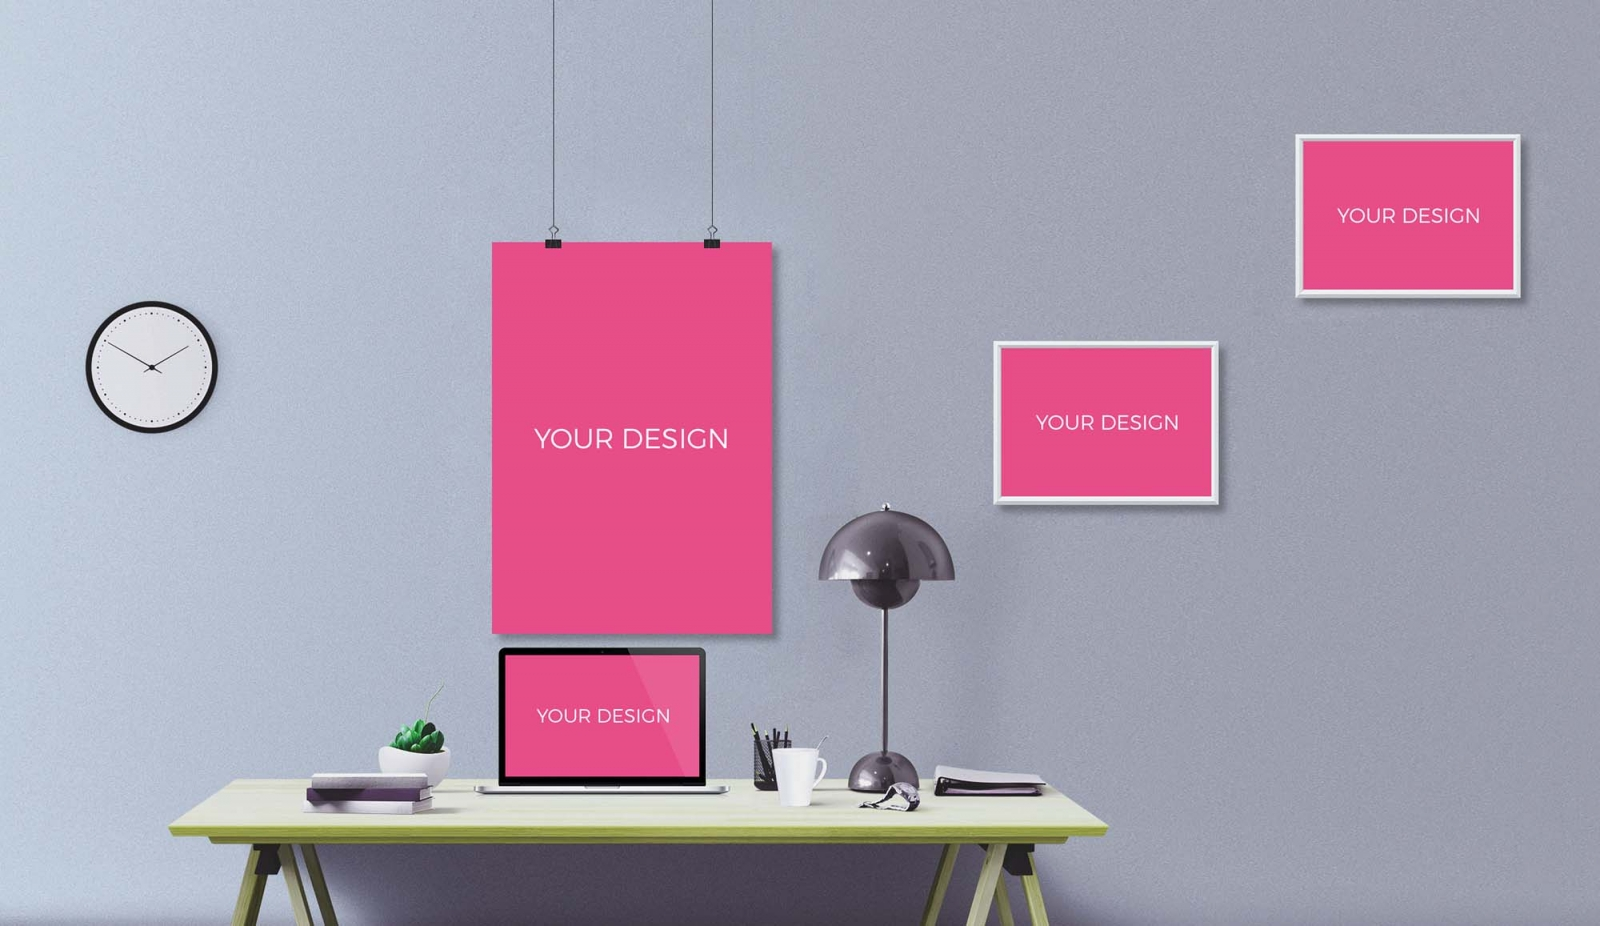 Workspace and Posters Mockup